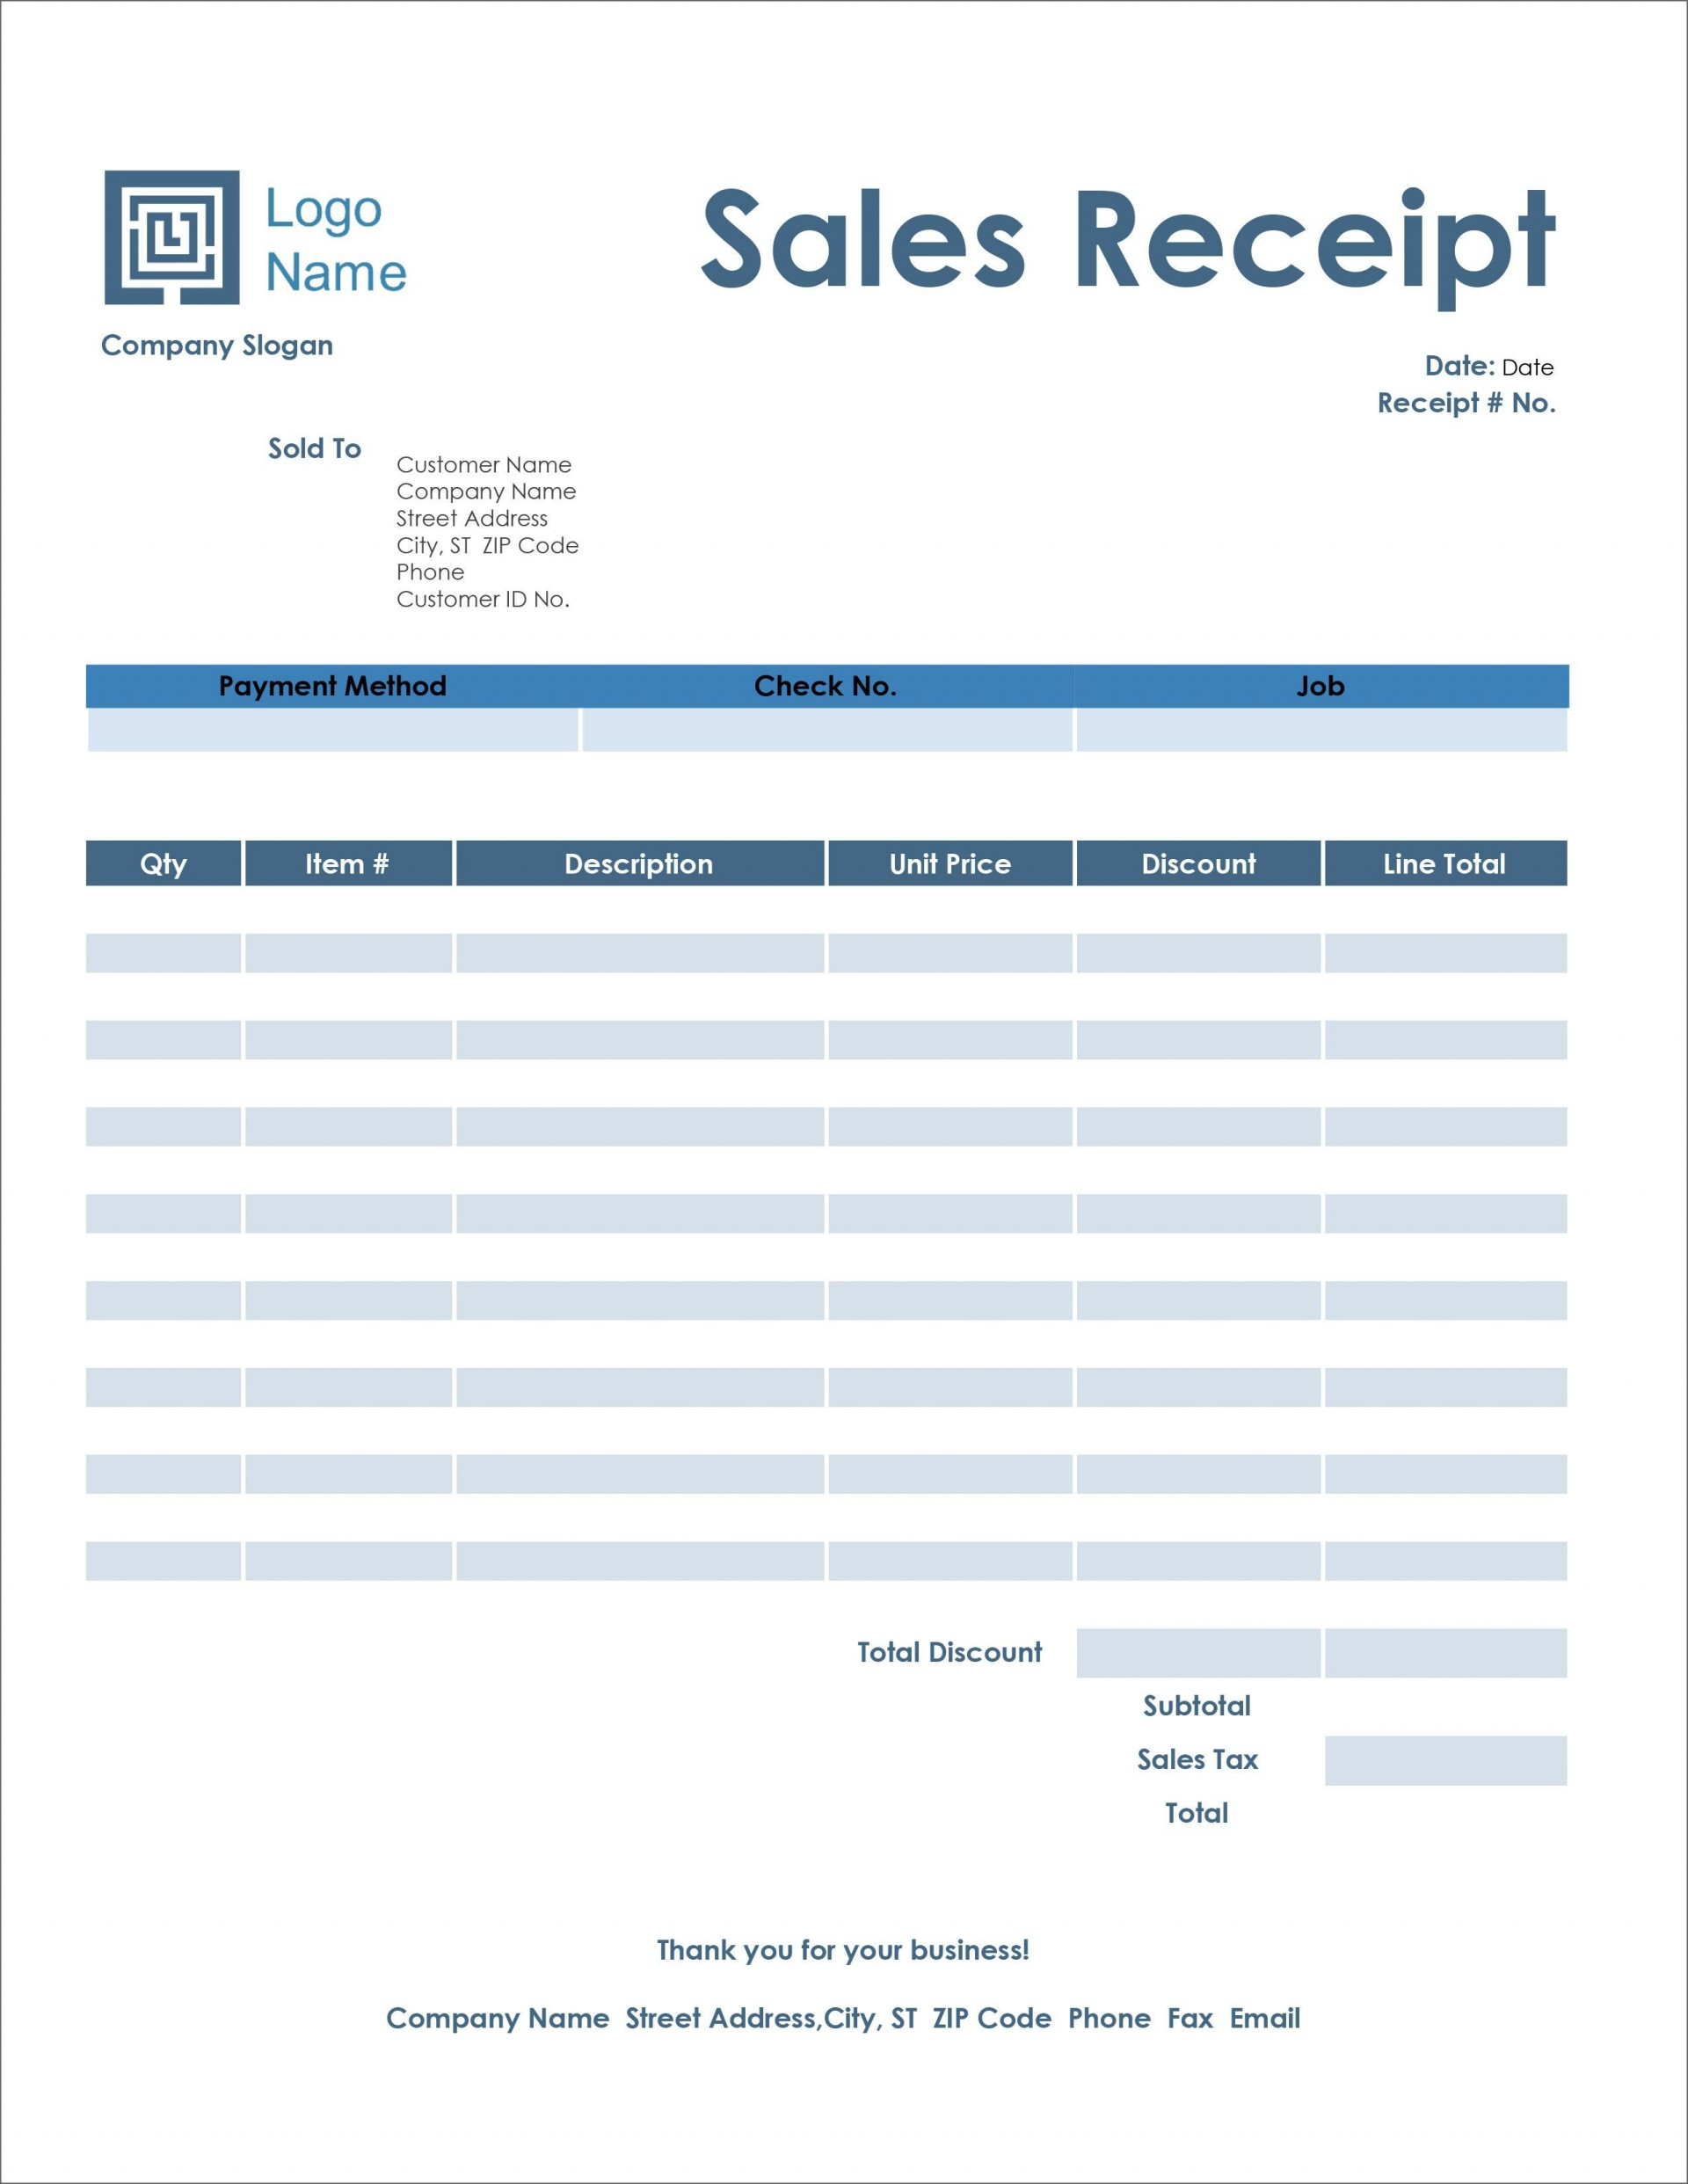 004 Unusual Rent Receipt Template Google Doc Sample  Invoice Rental1920